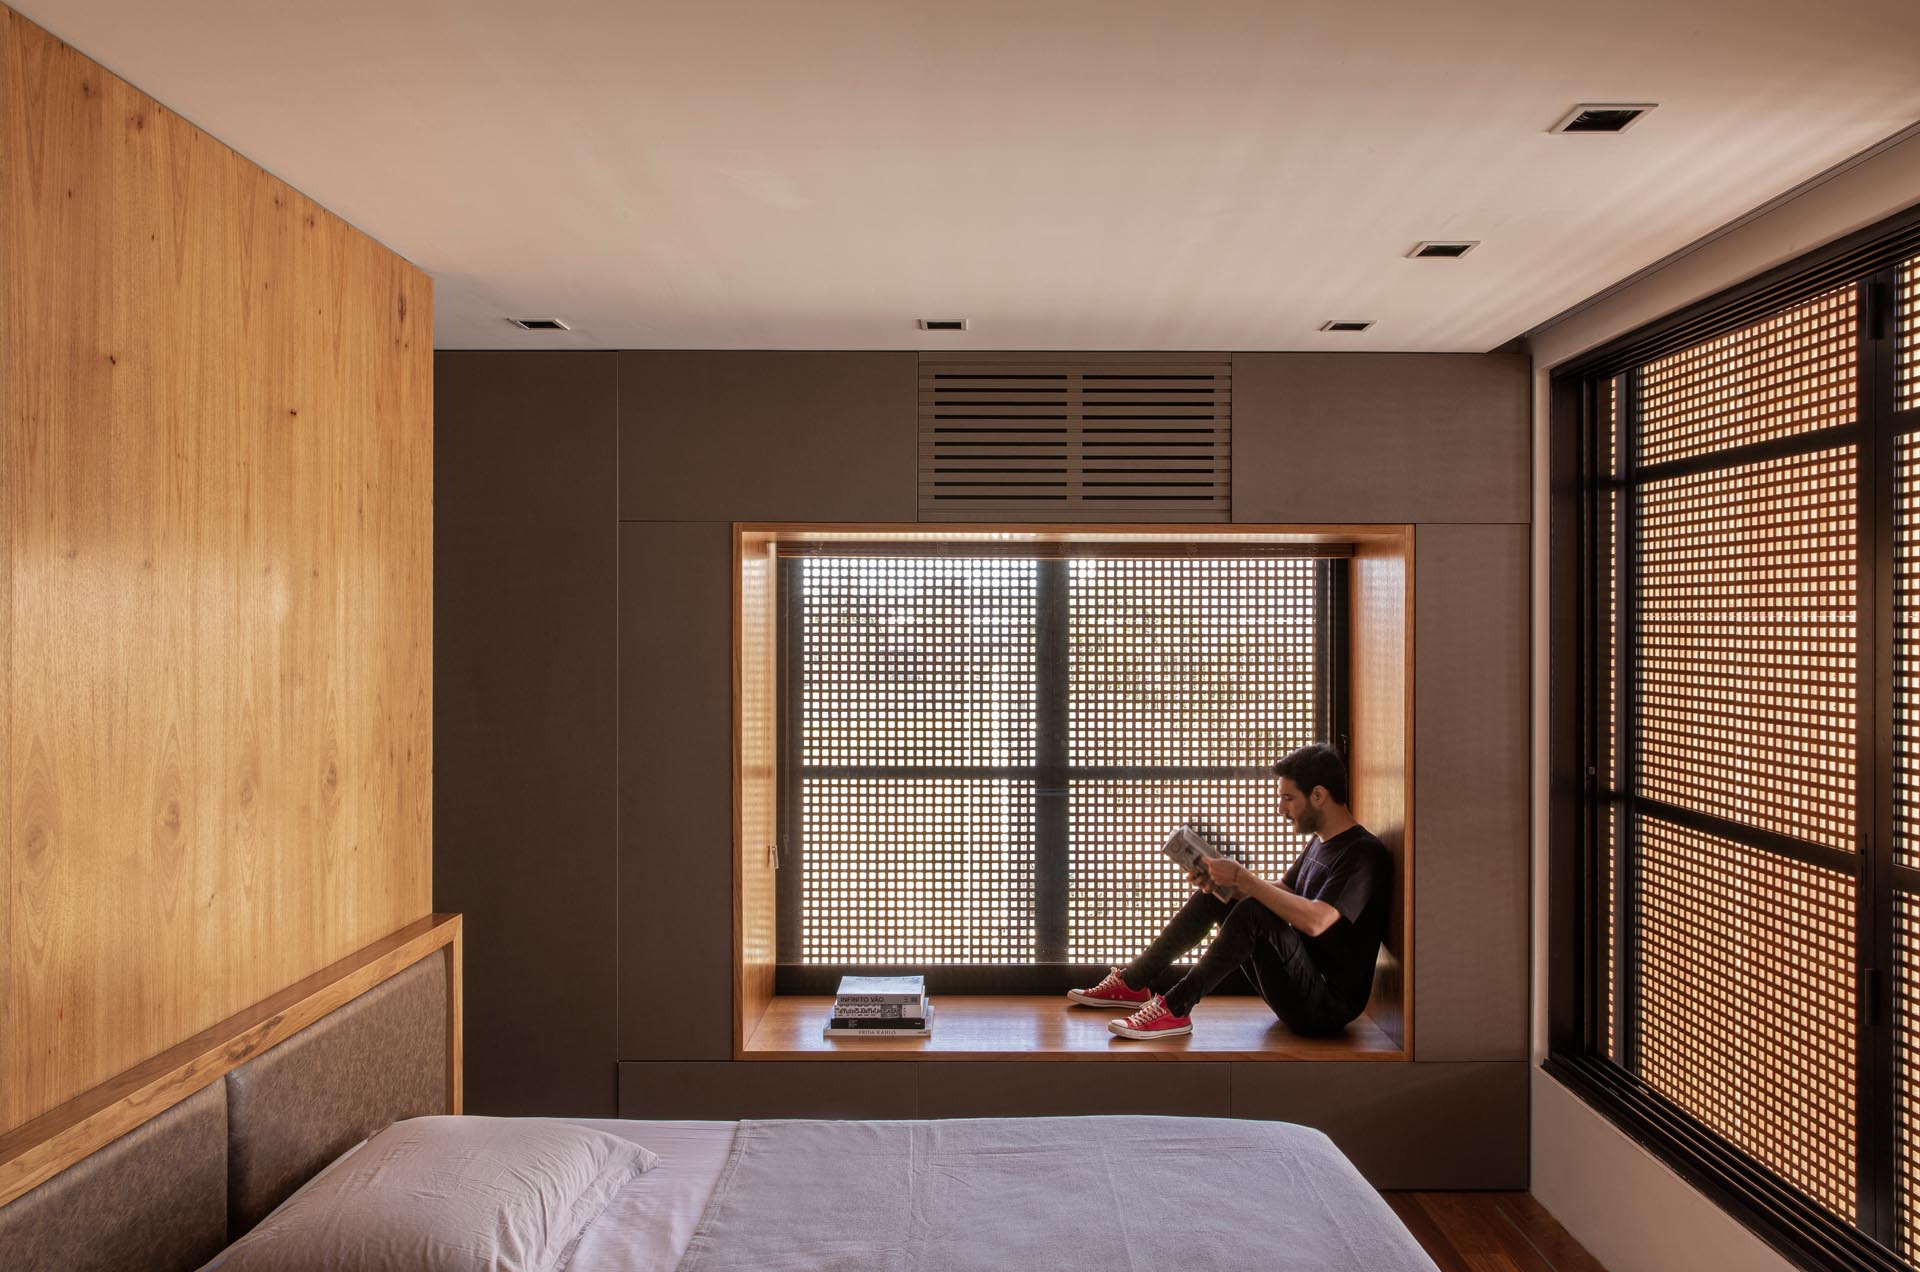 In this modern bedroom, there's a wood lined window seat that acts as a small reading nook. The louvers on the exterior of the home provide shade and privacy without blocking the natural light.